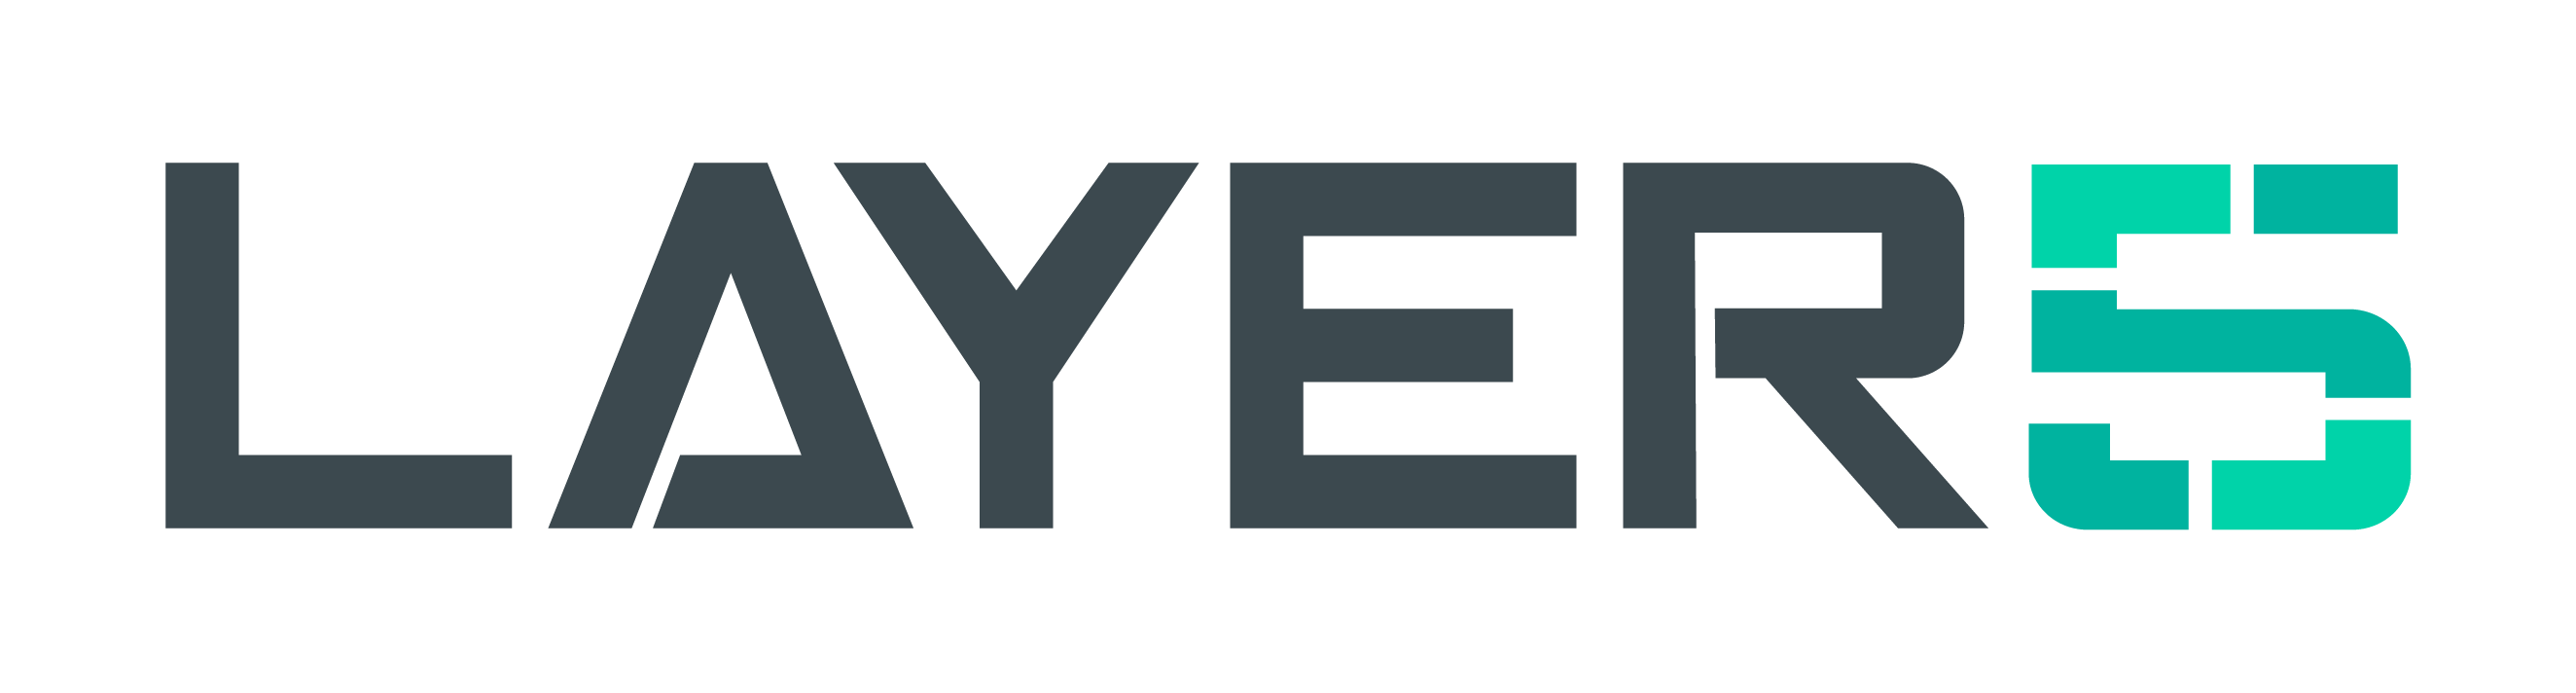 Layer5 Logo